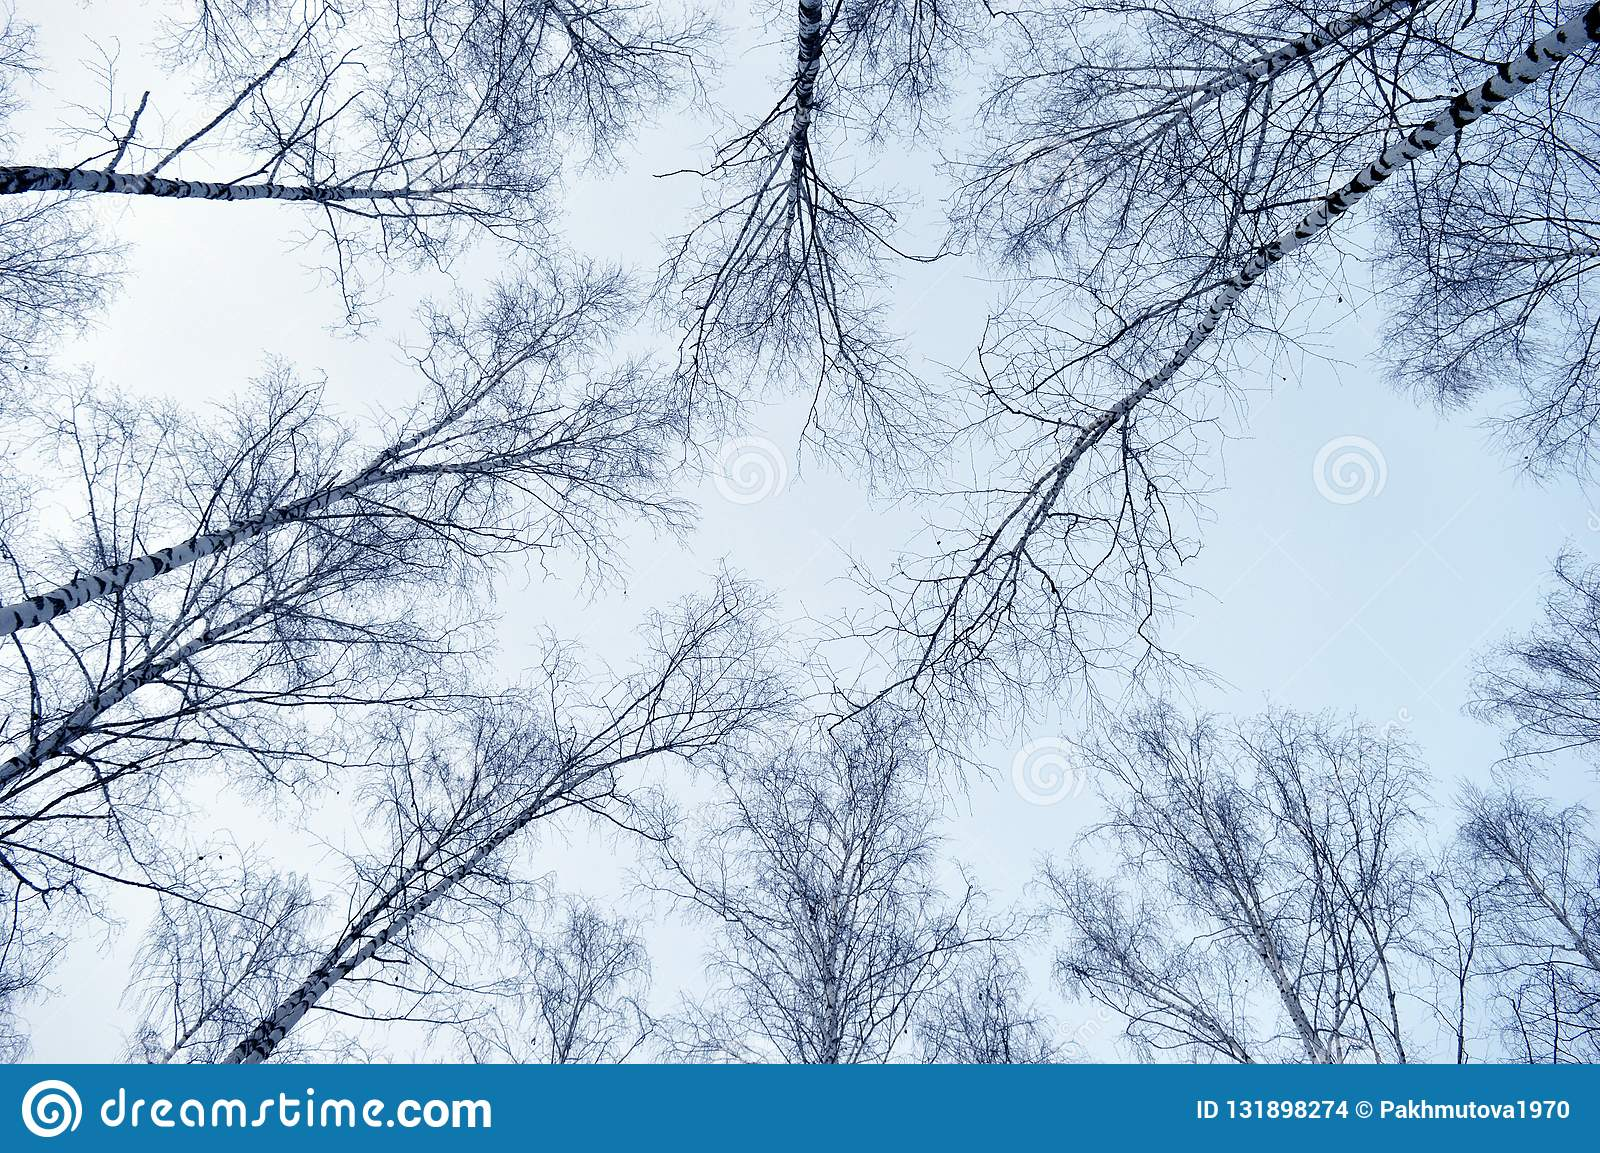 Hiver Neige Foret Arbre Froid Nature Arbres Paysage